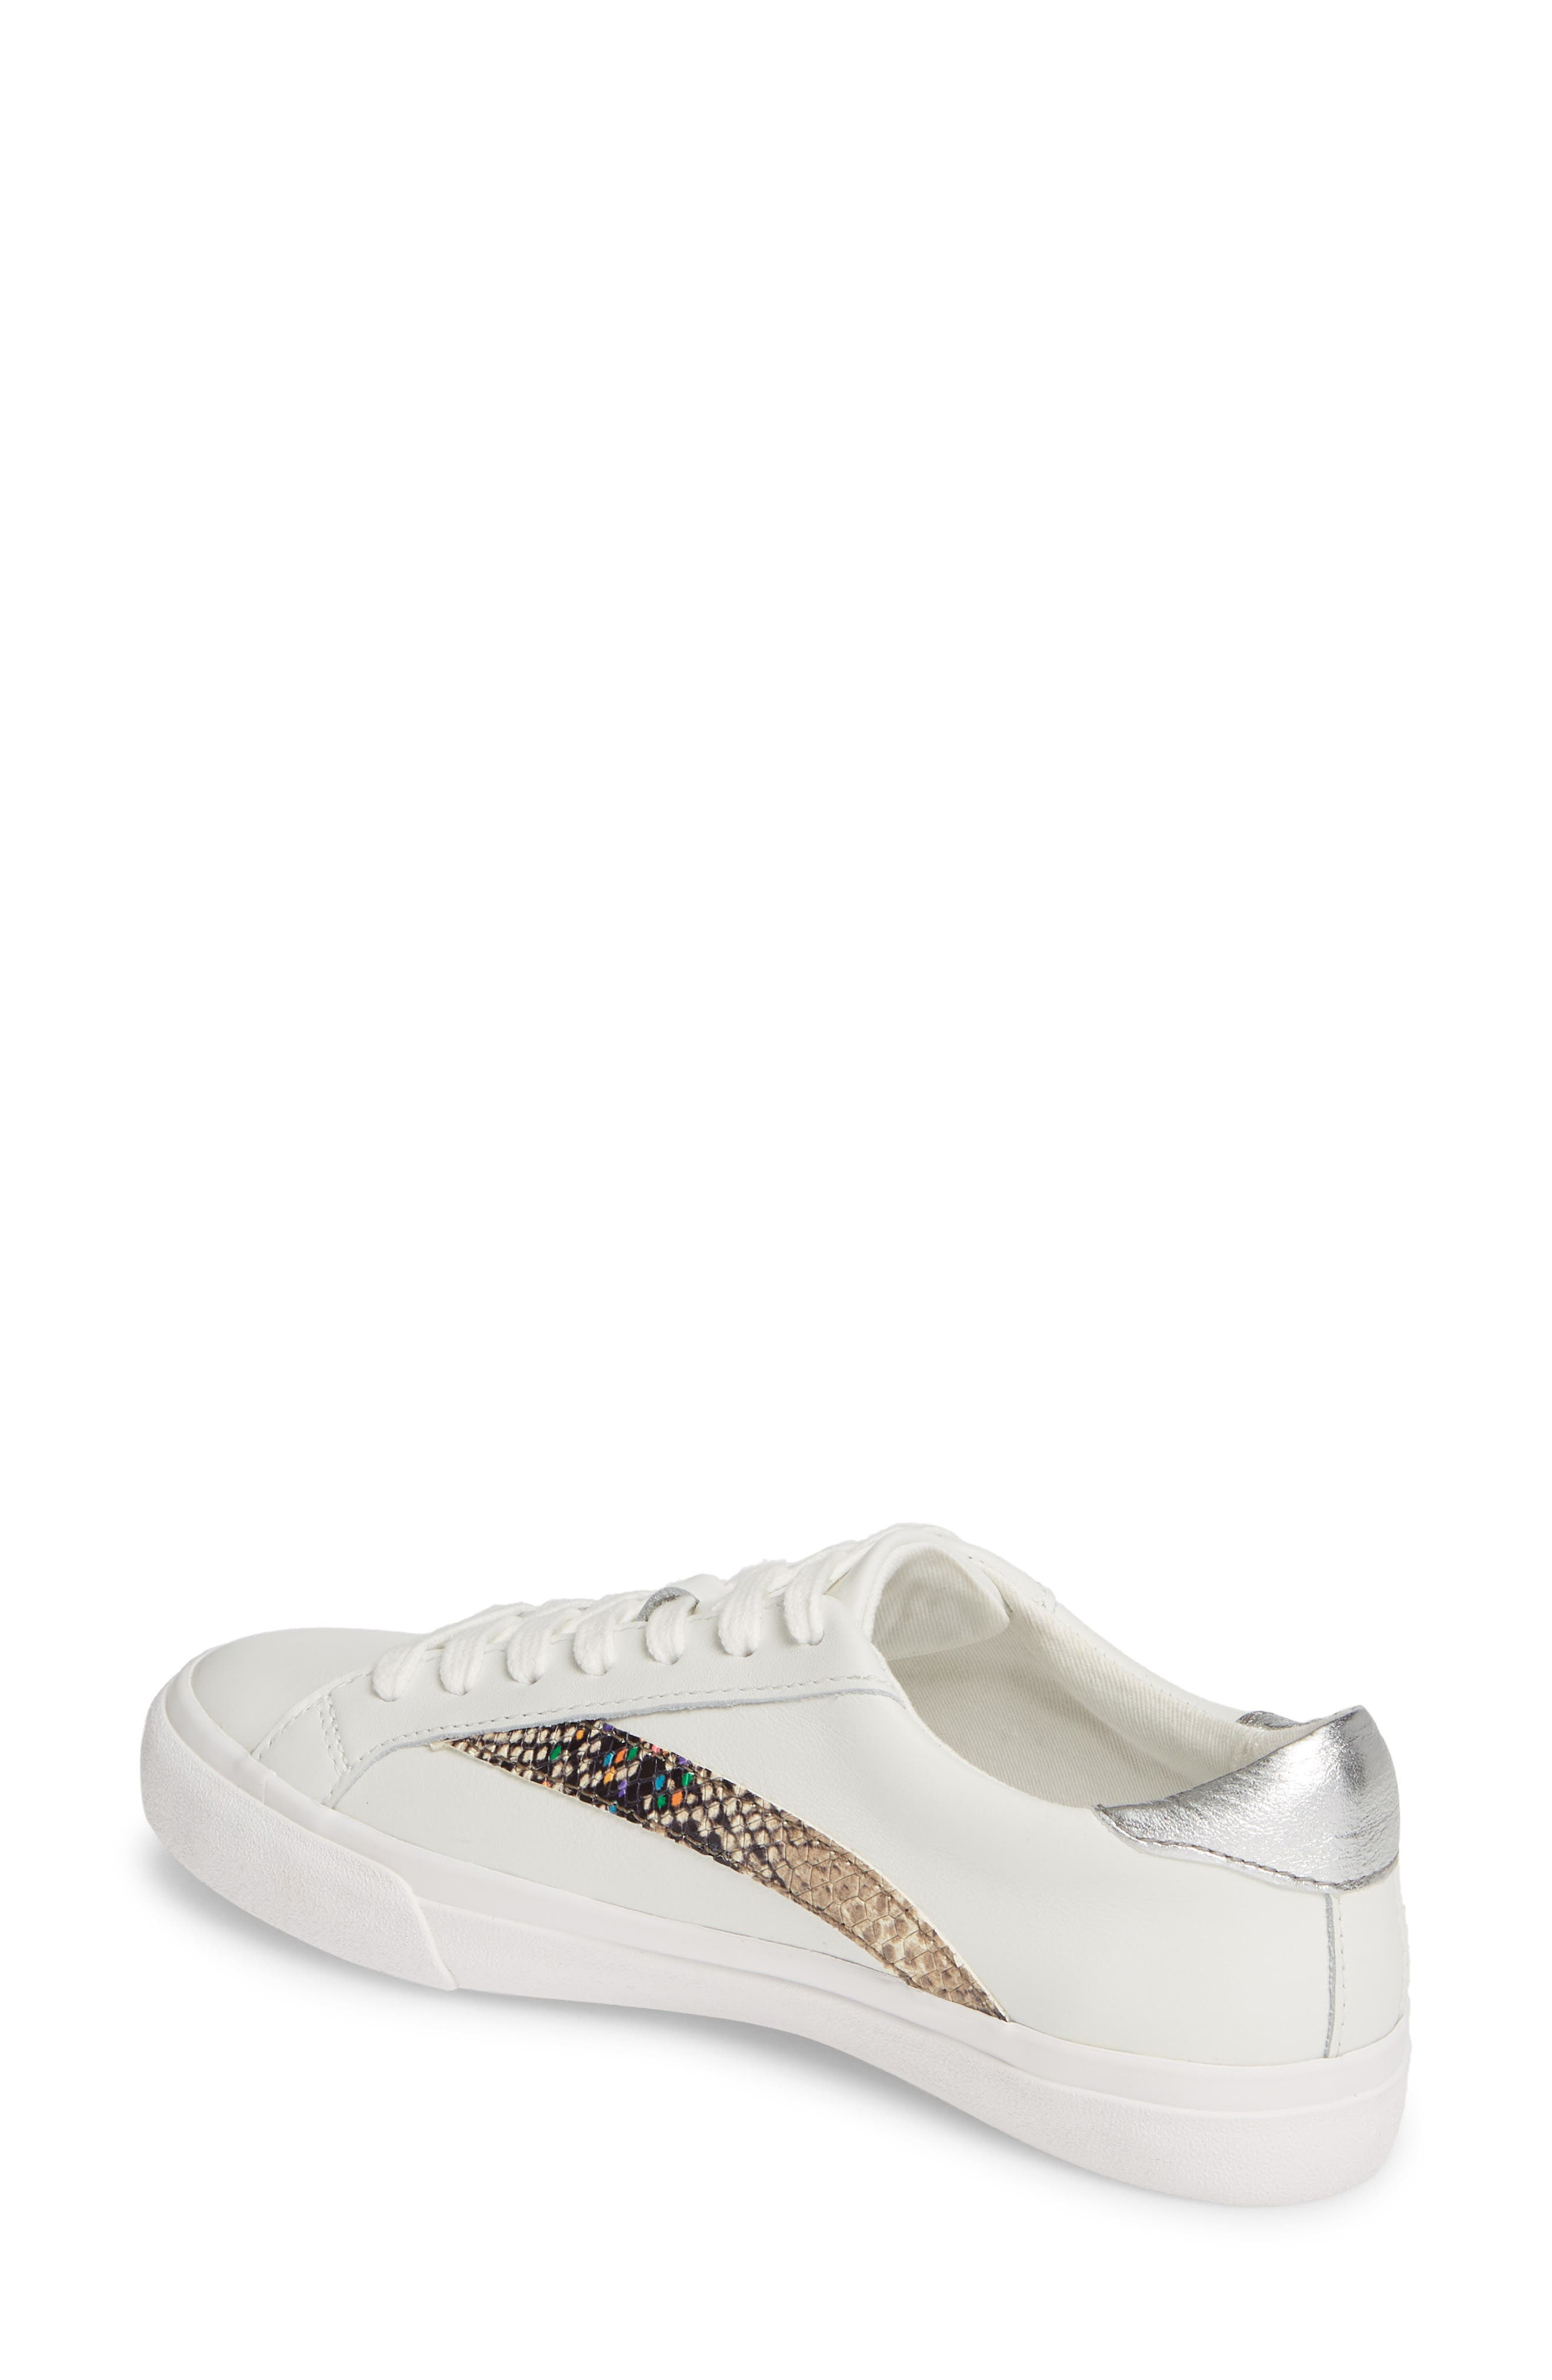 MADEWELL, Delia Sneaker, Alternate thumbnail 3, color, LIGHT UMBER MULTI